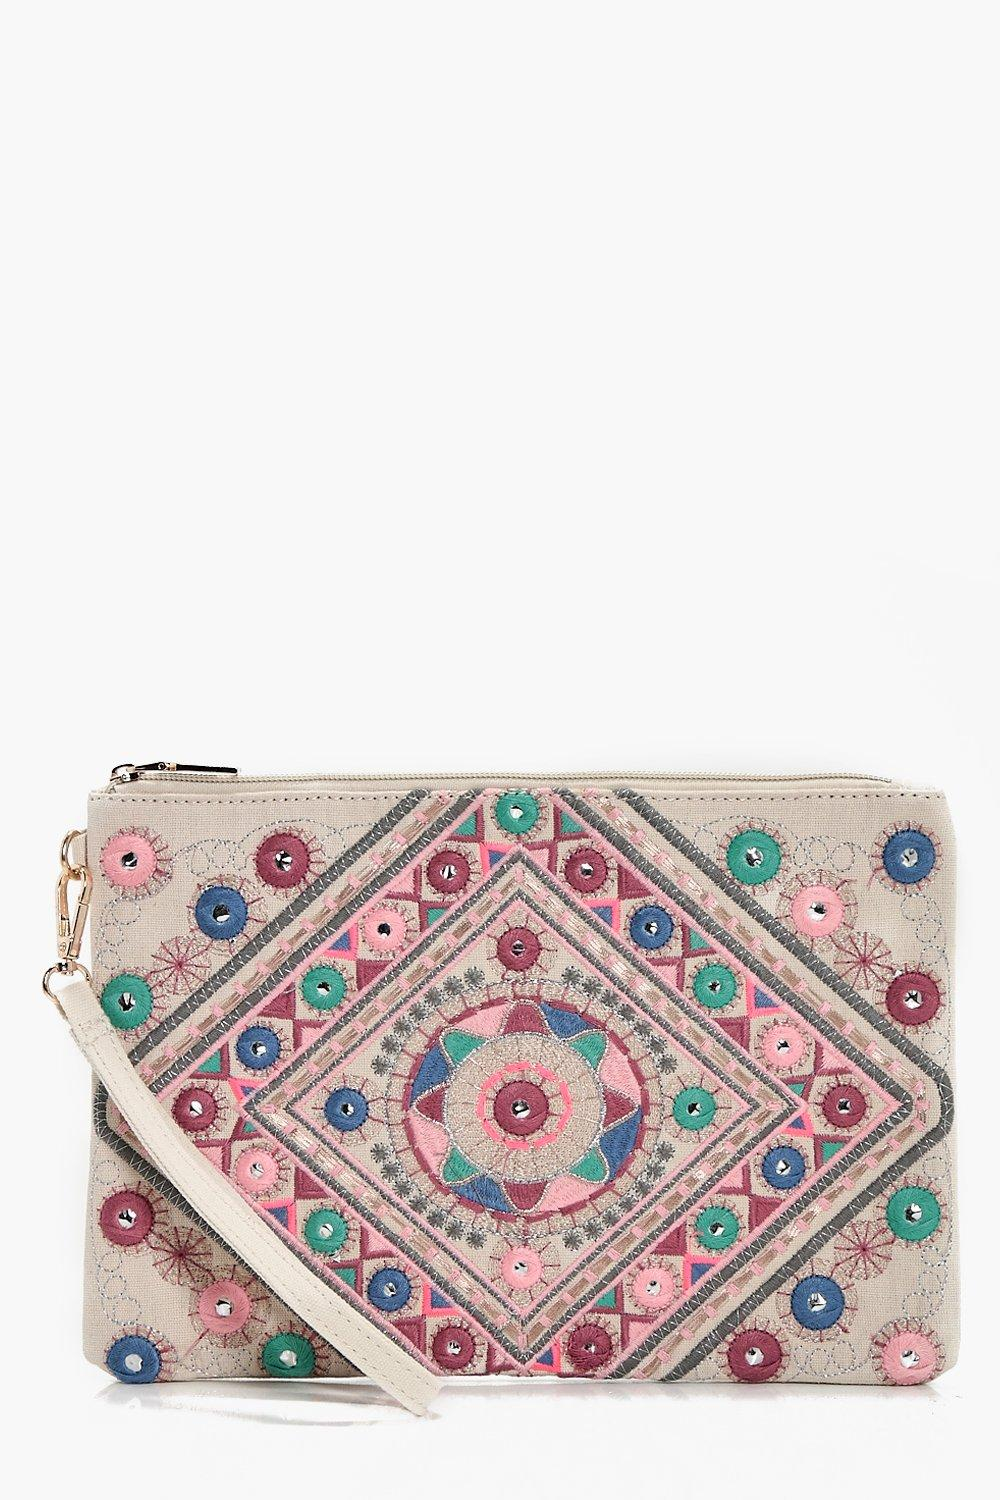 Mirrored Embroidery Oversize Clutch - white - Kate